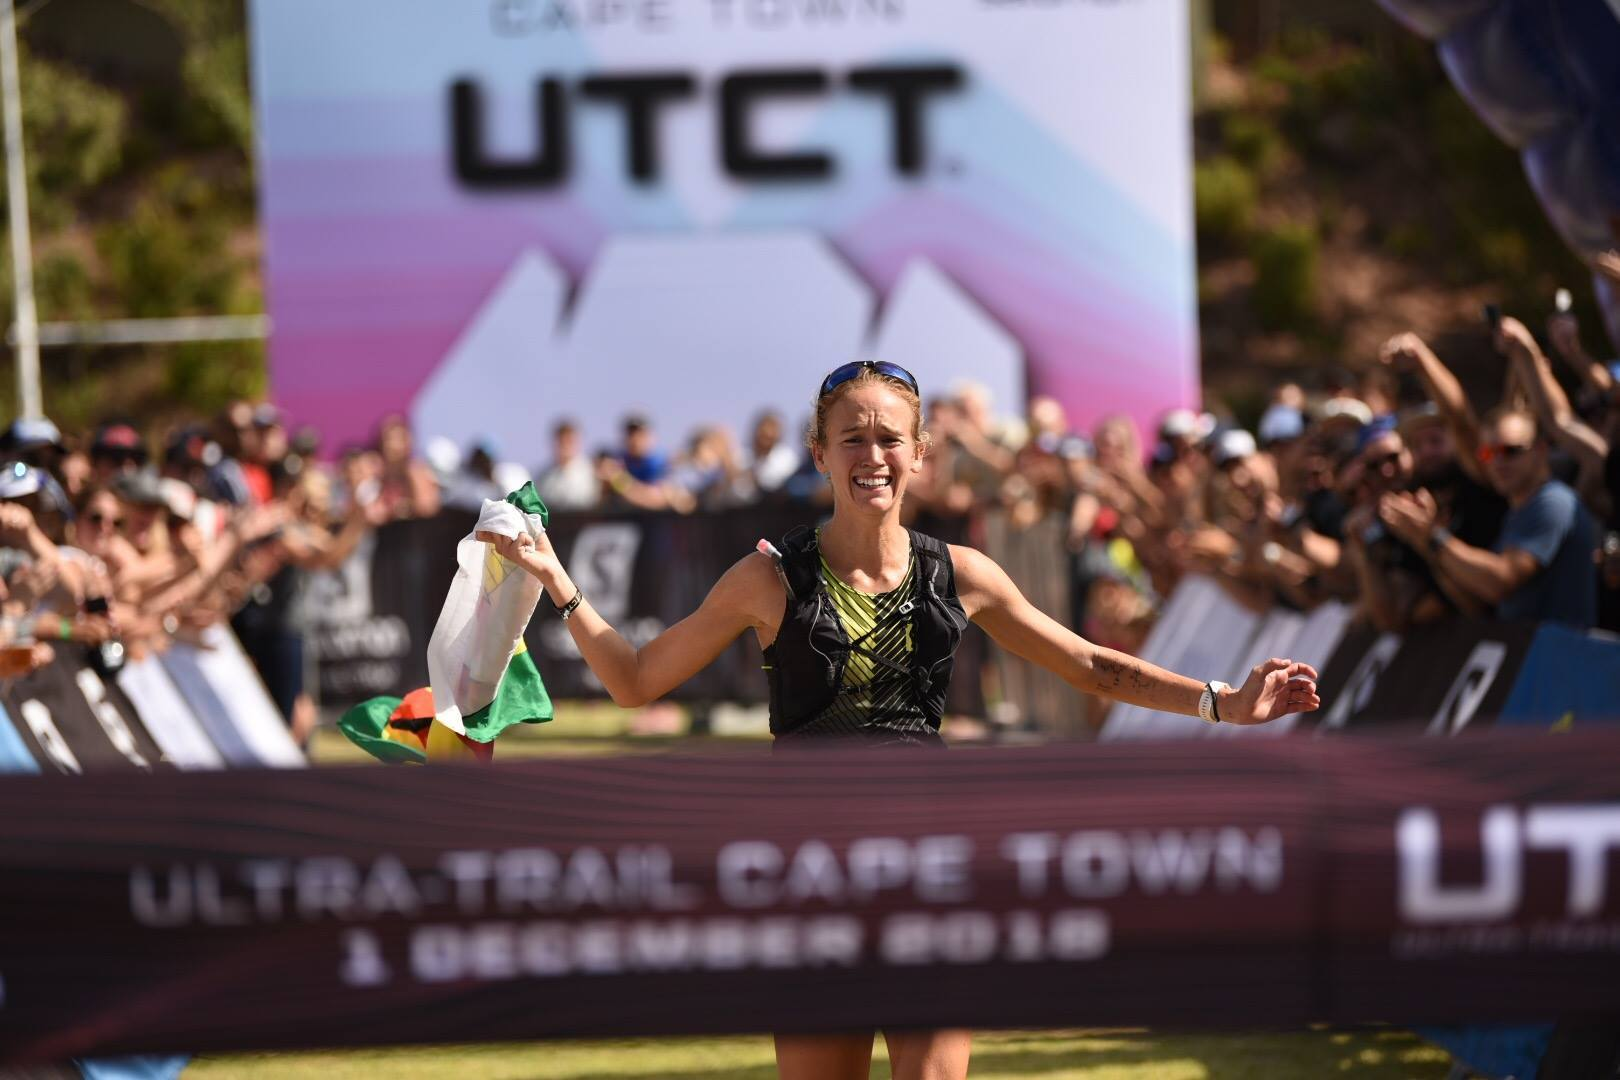 The best of UTCT 2018